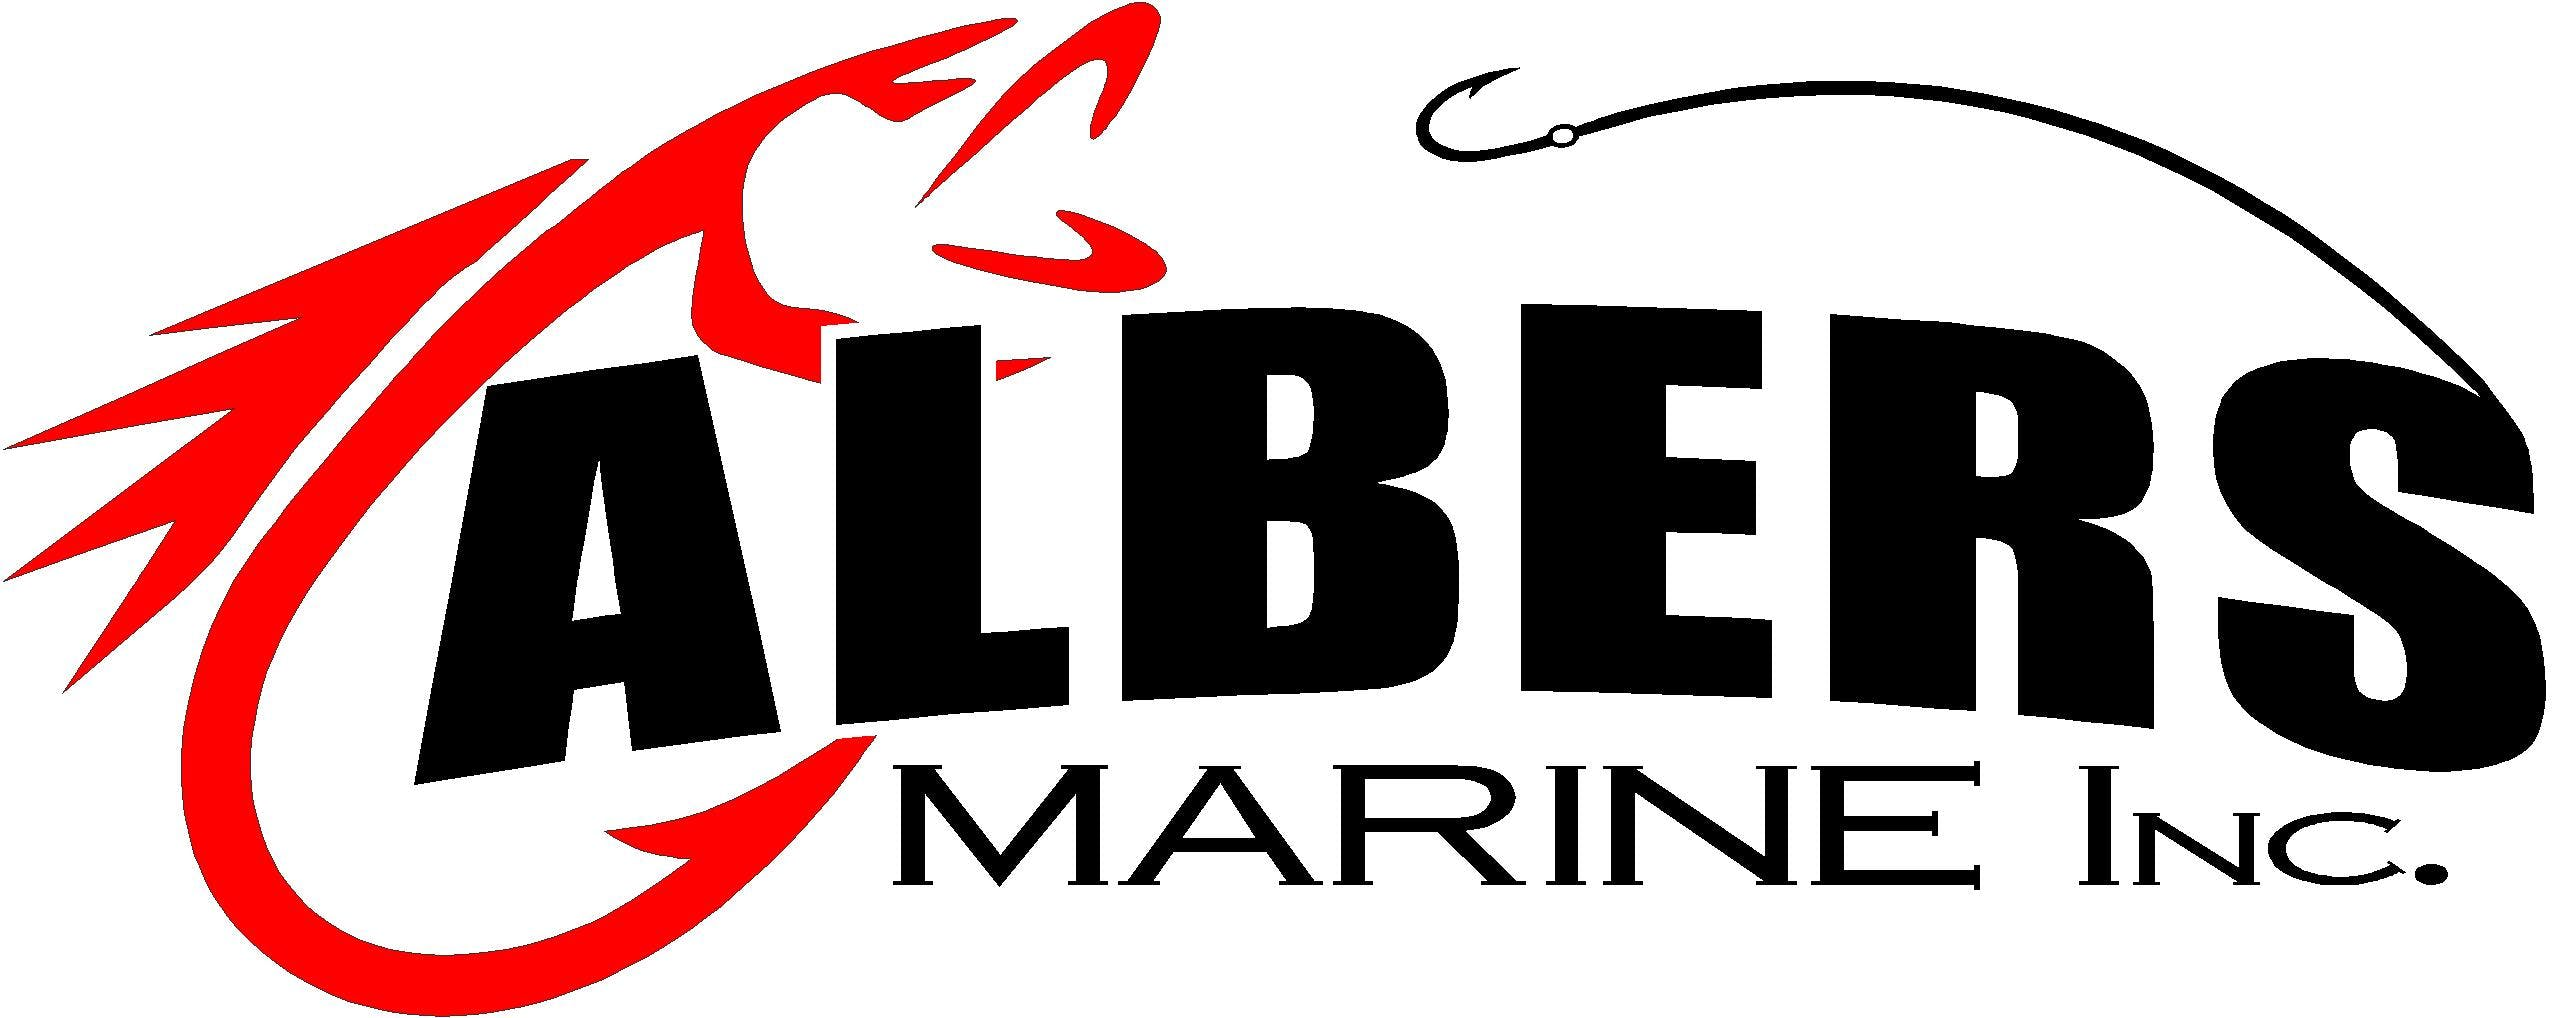 Company logo for 'Albers Marine Inc'.